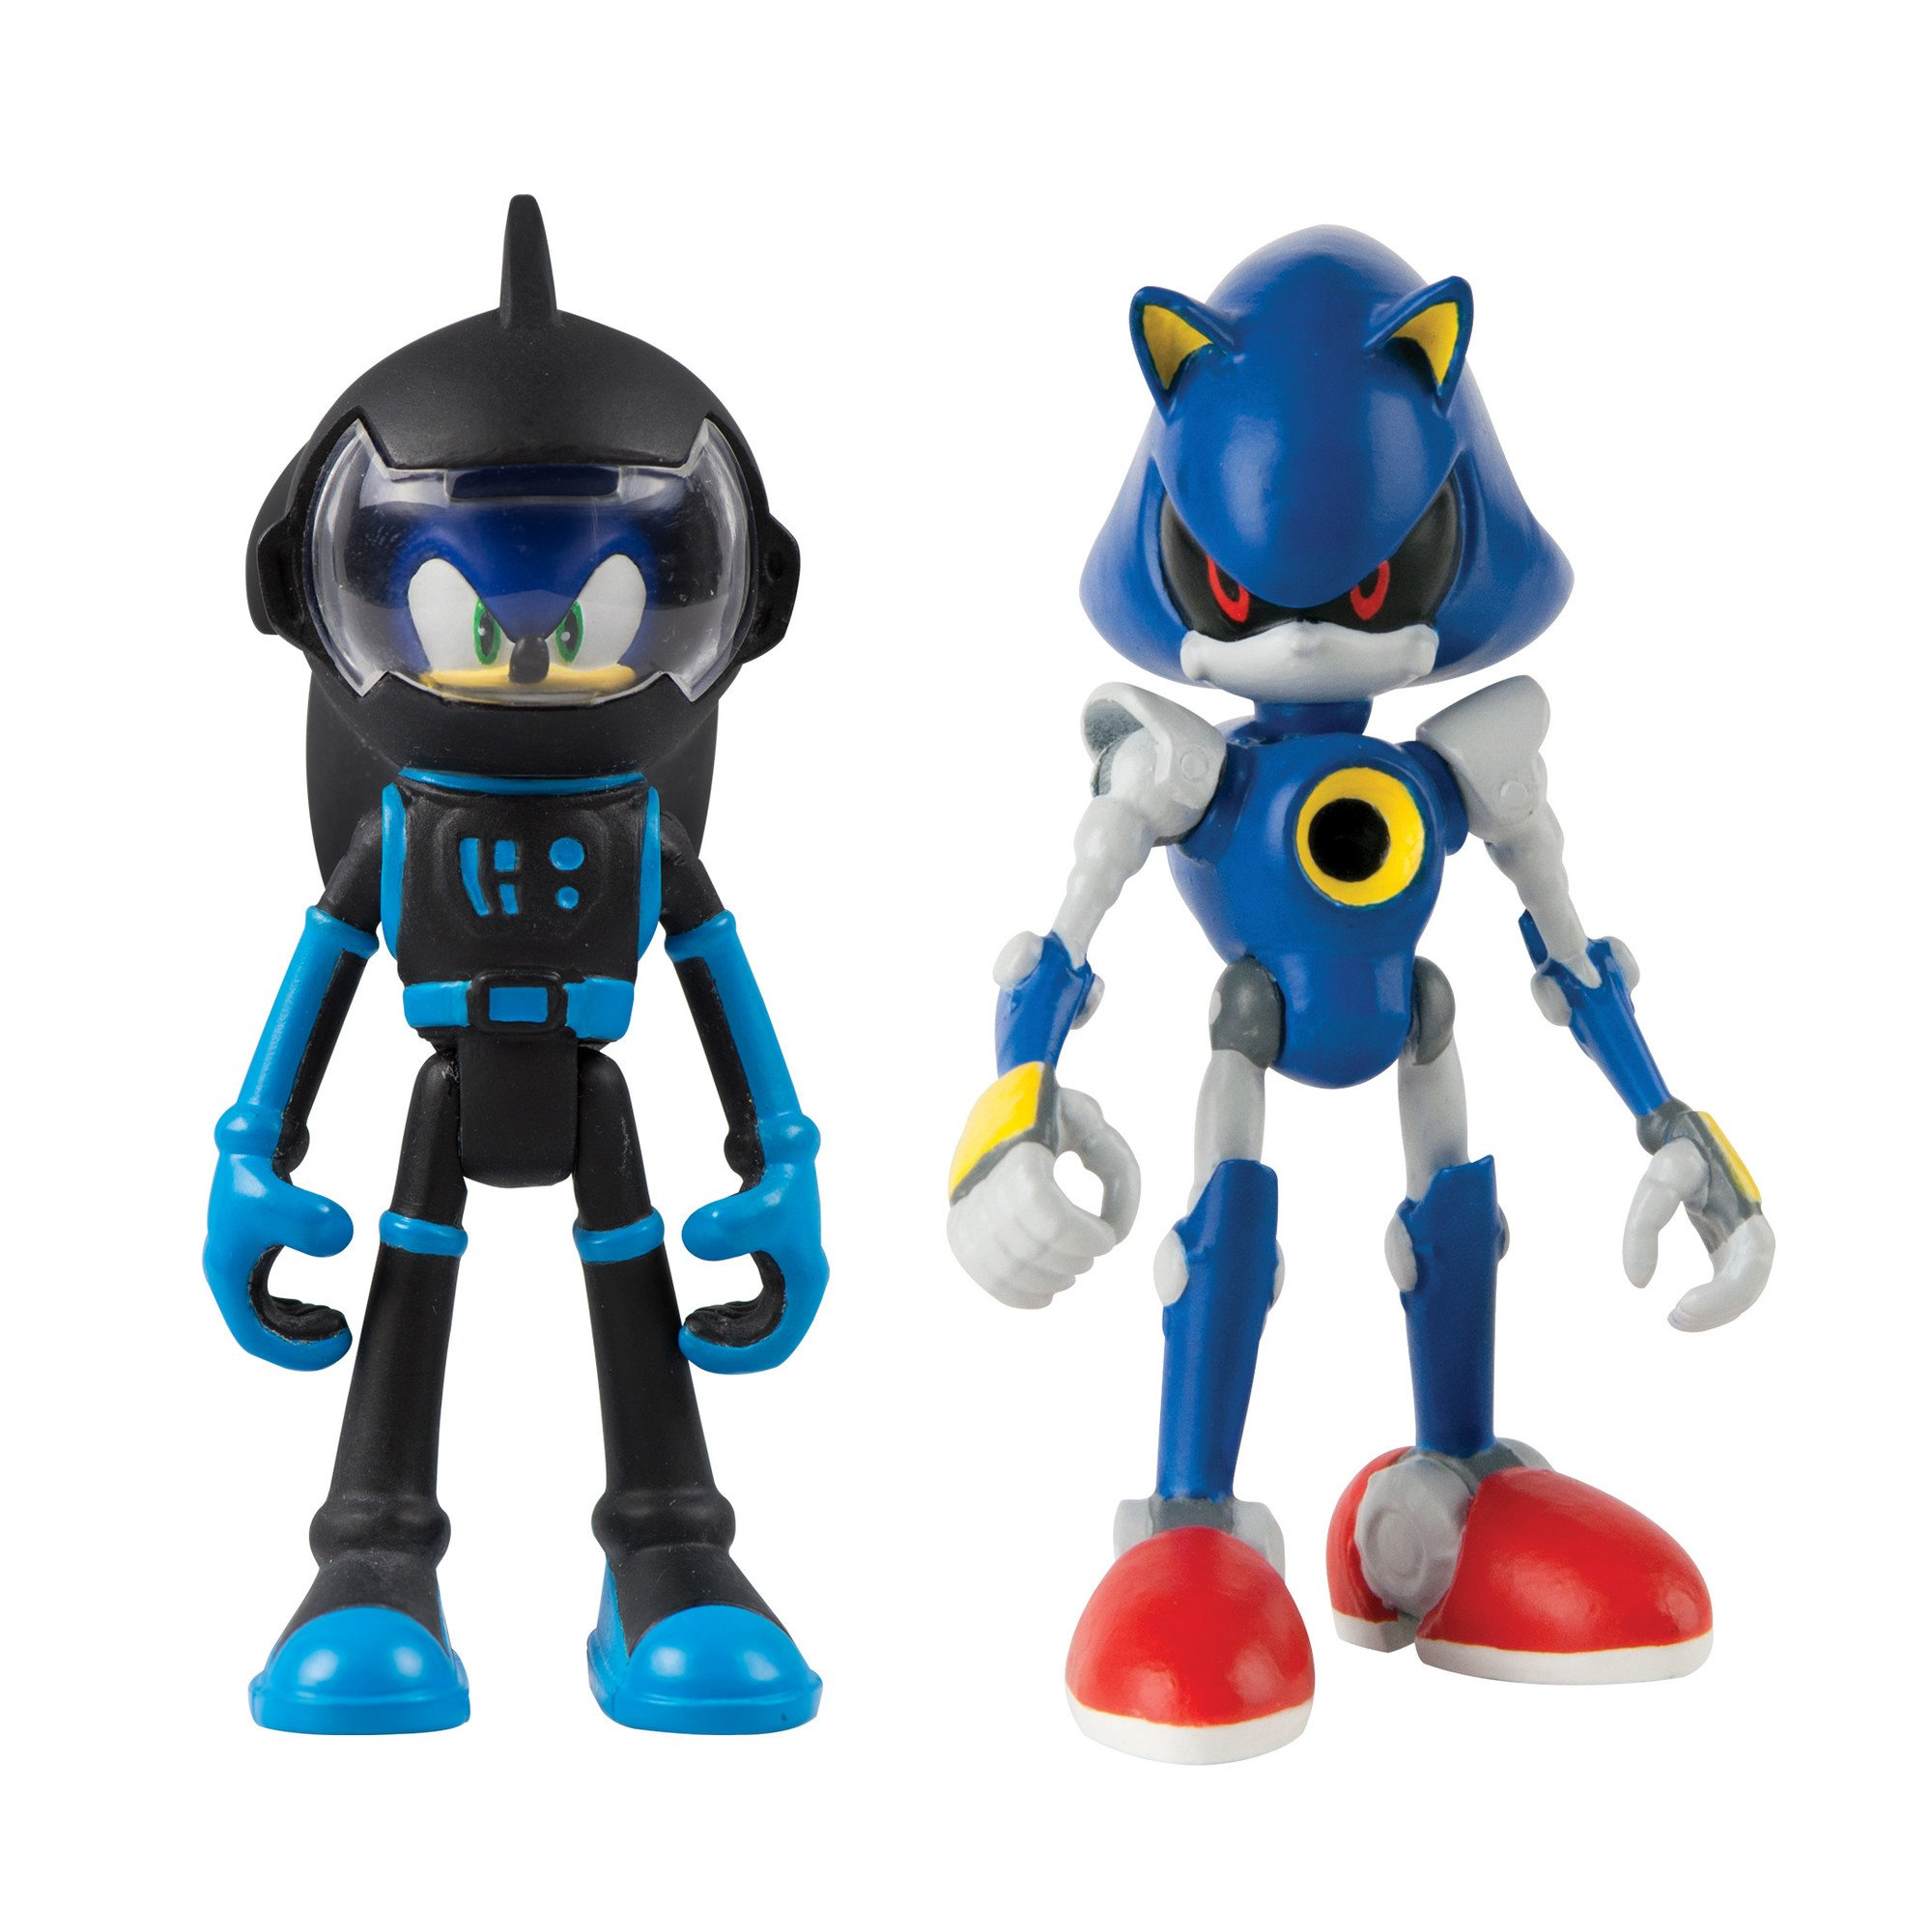 Sonic Boom Sonic The Hedgehog And Metal 3 Inch Articulated Figures 2 Pack Buy Online In Barbados Sonic The Hedgehog Products In Barbados See Prices Reviews And Free Delivery Over Bds 150 Desertcart